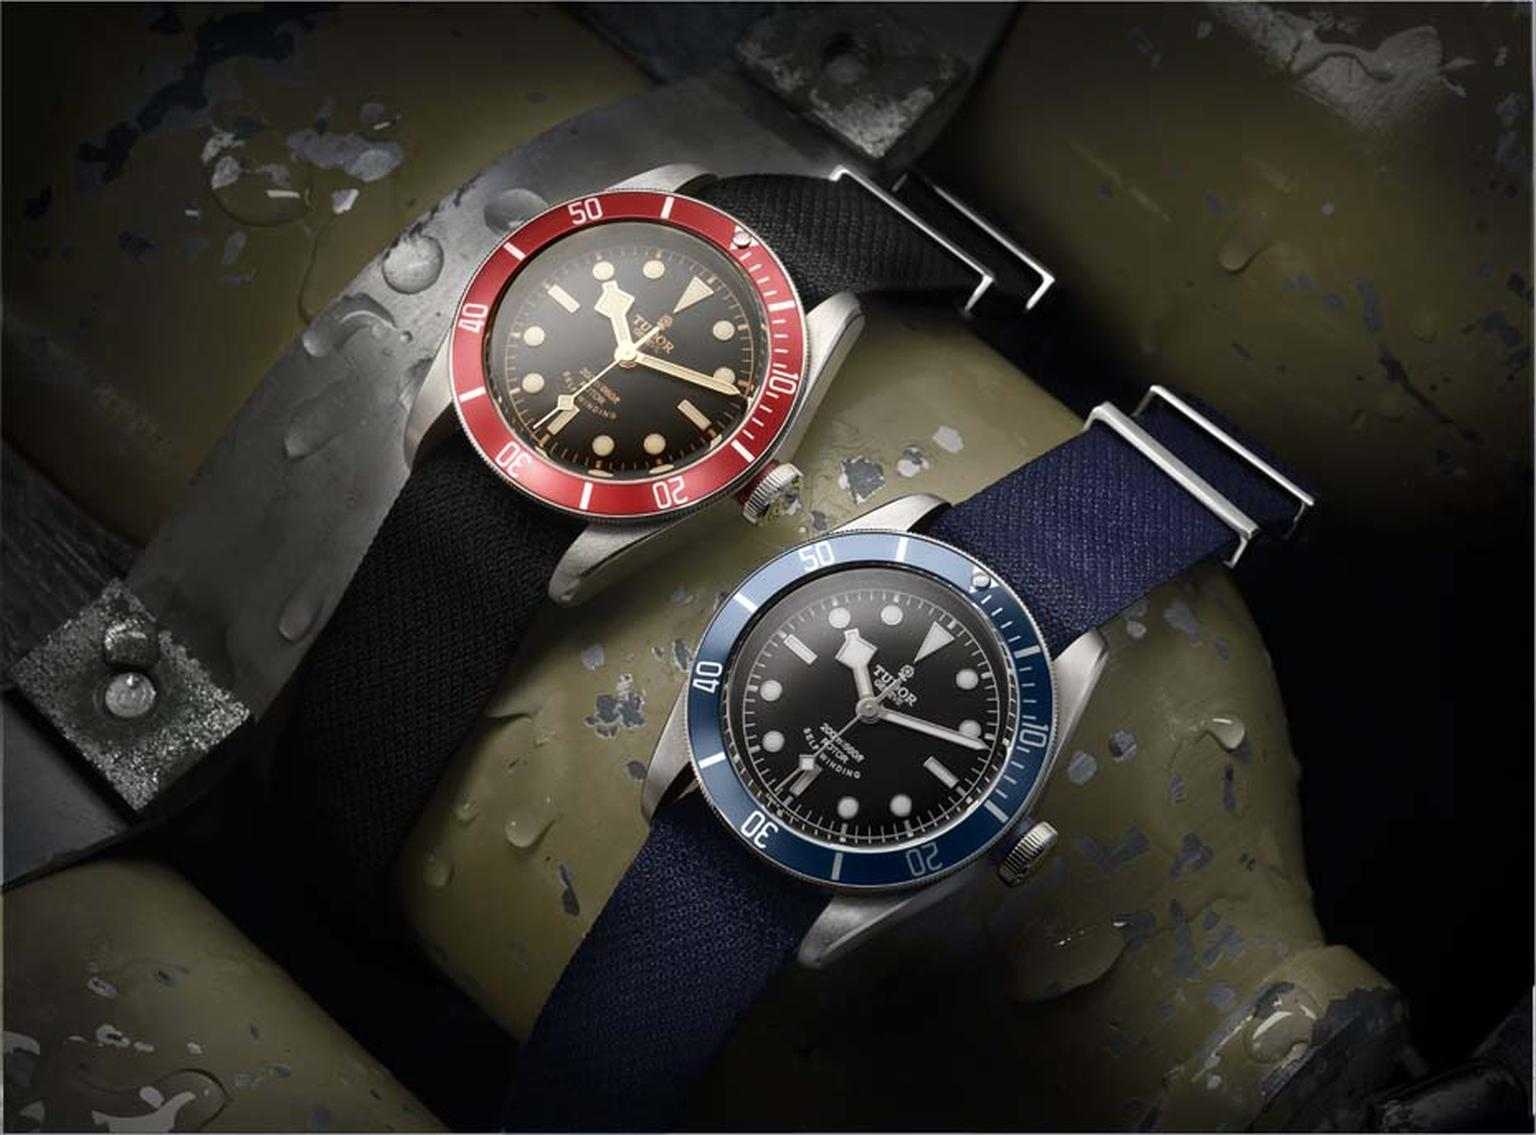 The new Tudor Heritage Black Bay dive watches are based on the design of a 1954 Submariner watch.